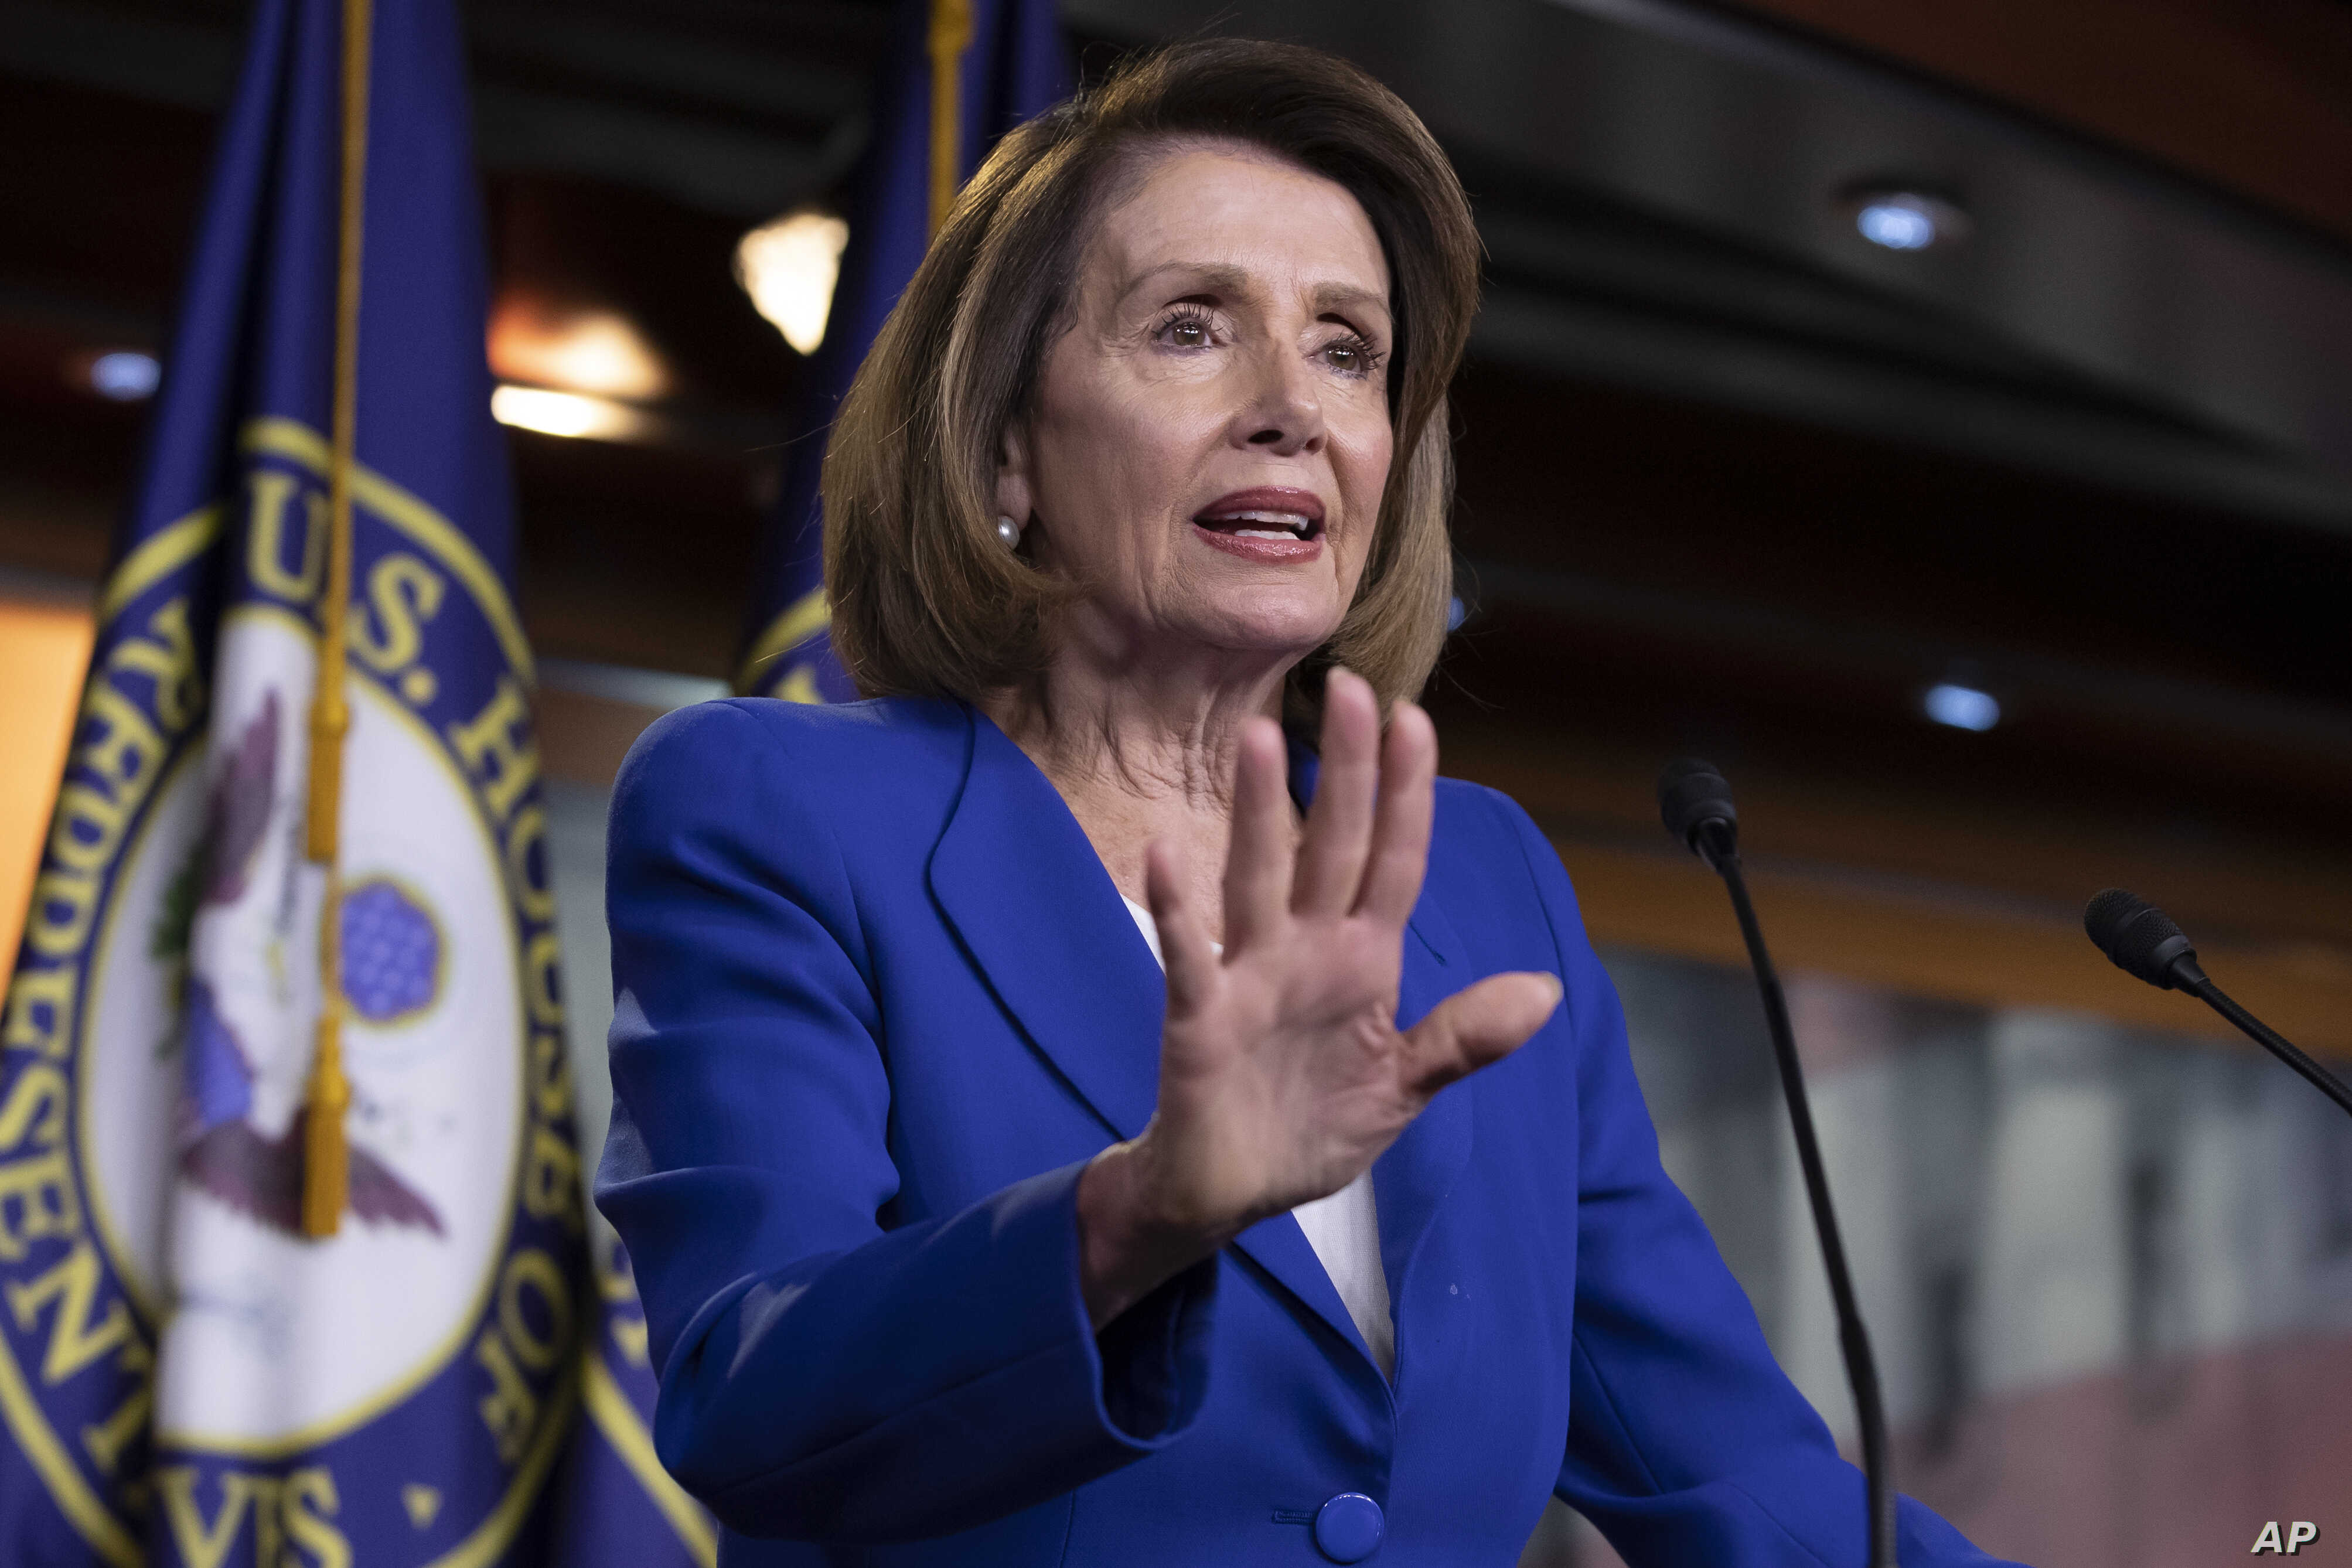 Speaker of the House Nancy Pelosi talks to reporters during a news conference at the Capitol in Washington, Jan. 31, 2019.